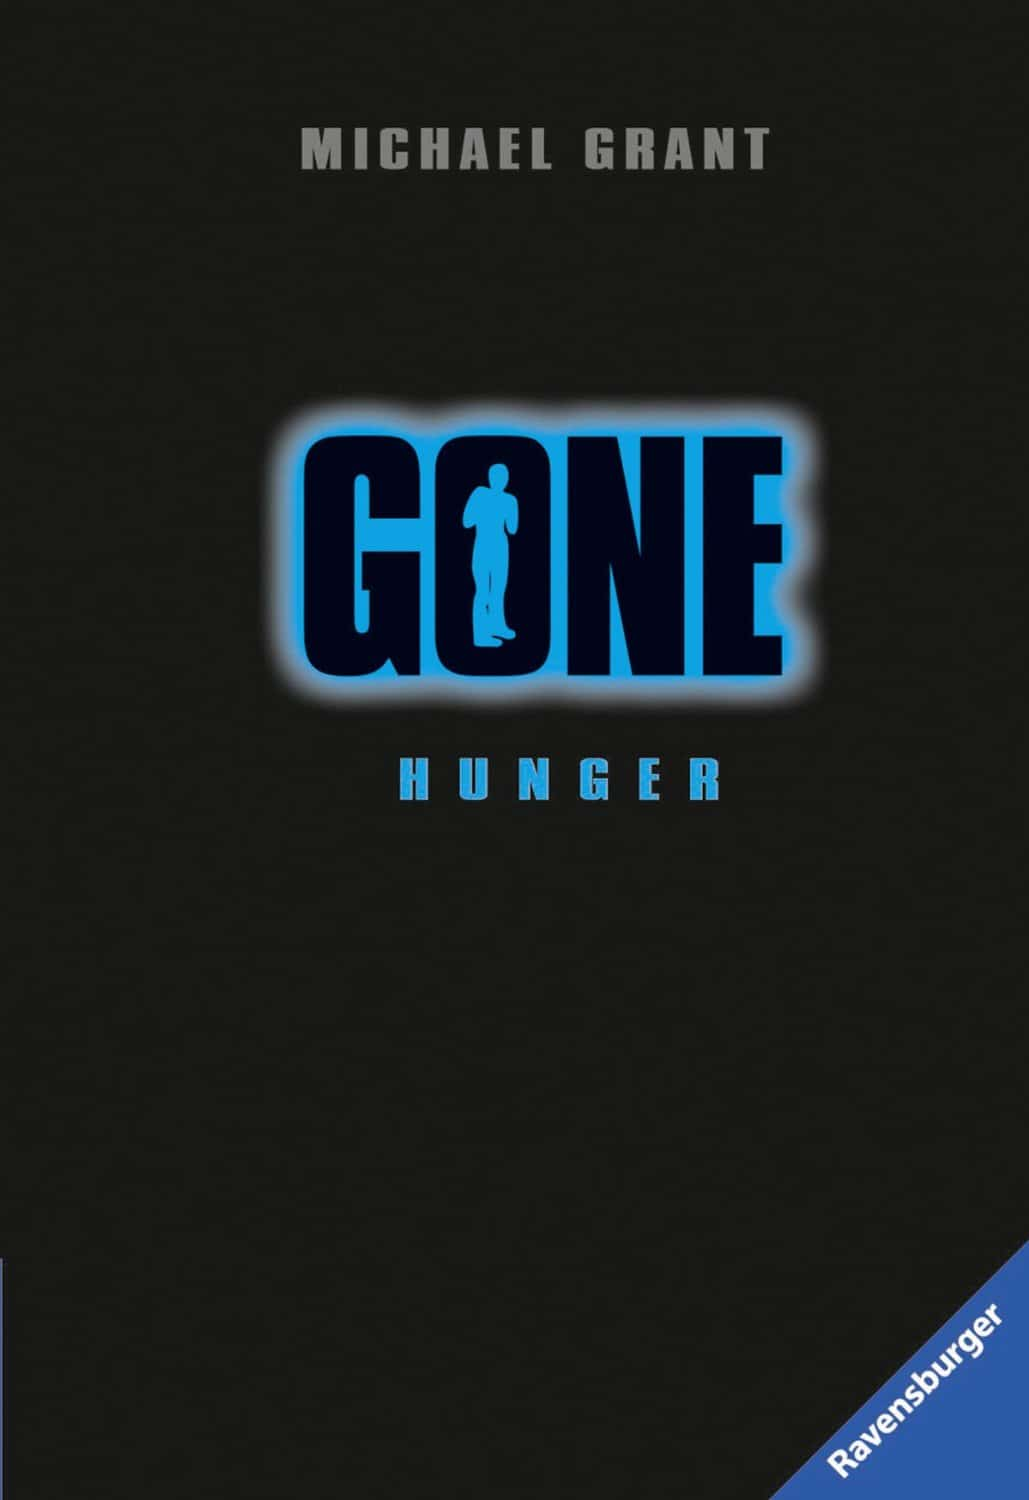 Michael Grant: Gone 2 (Hunger)